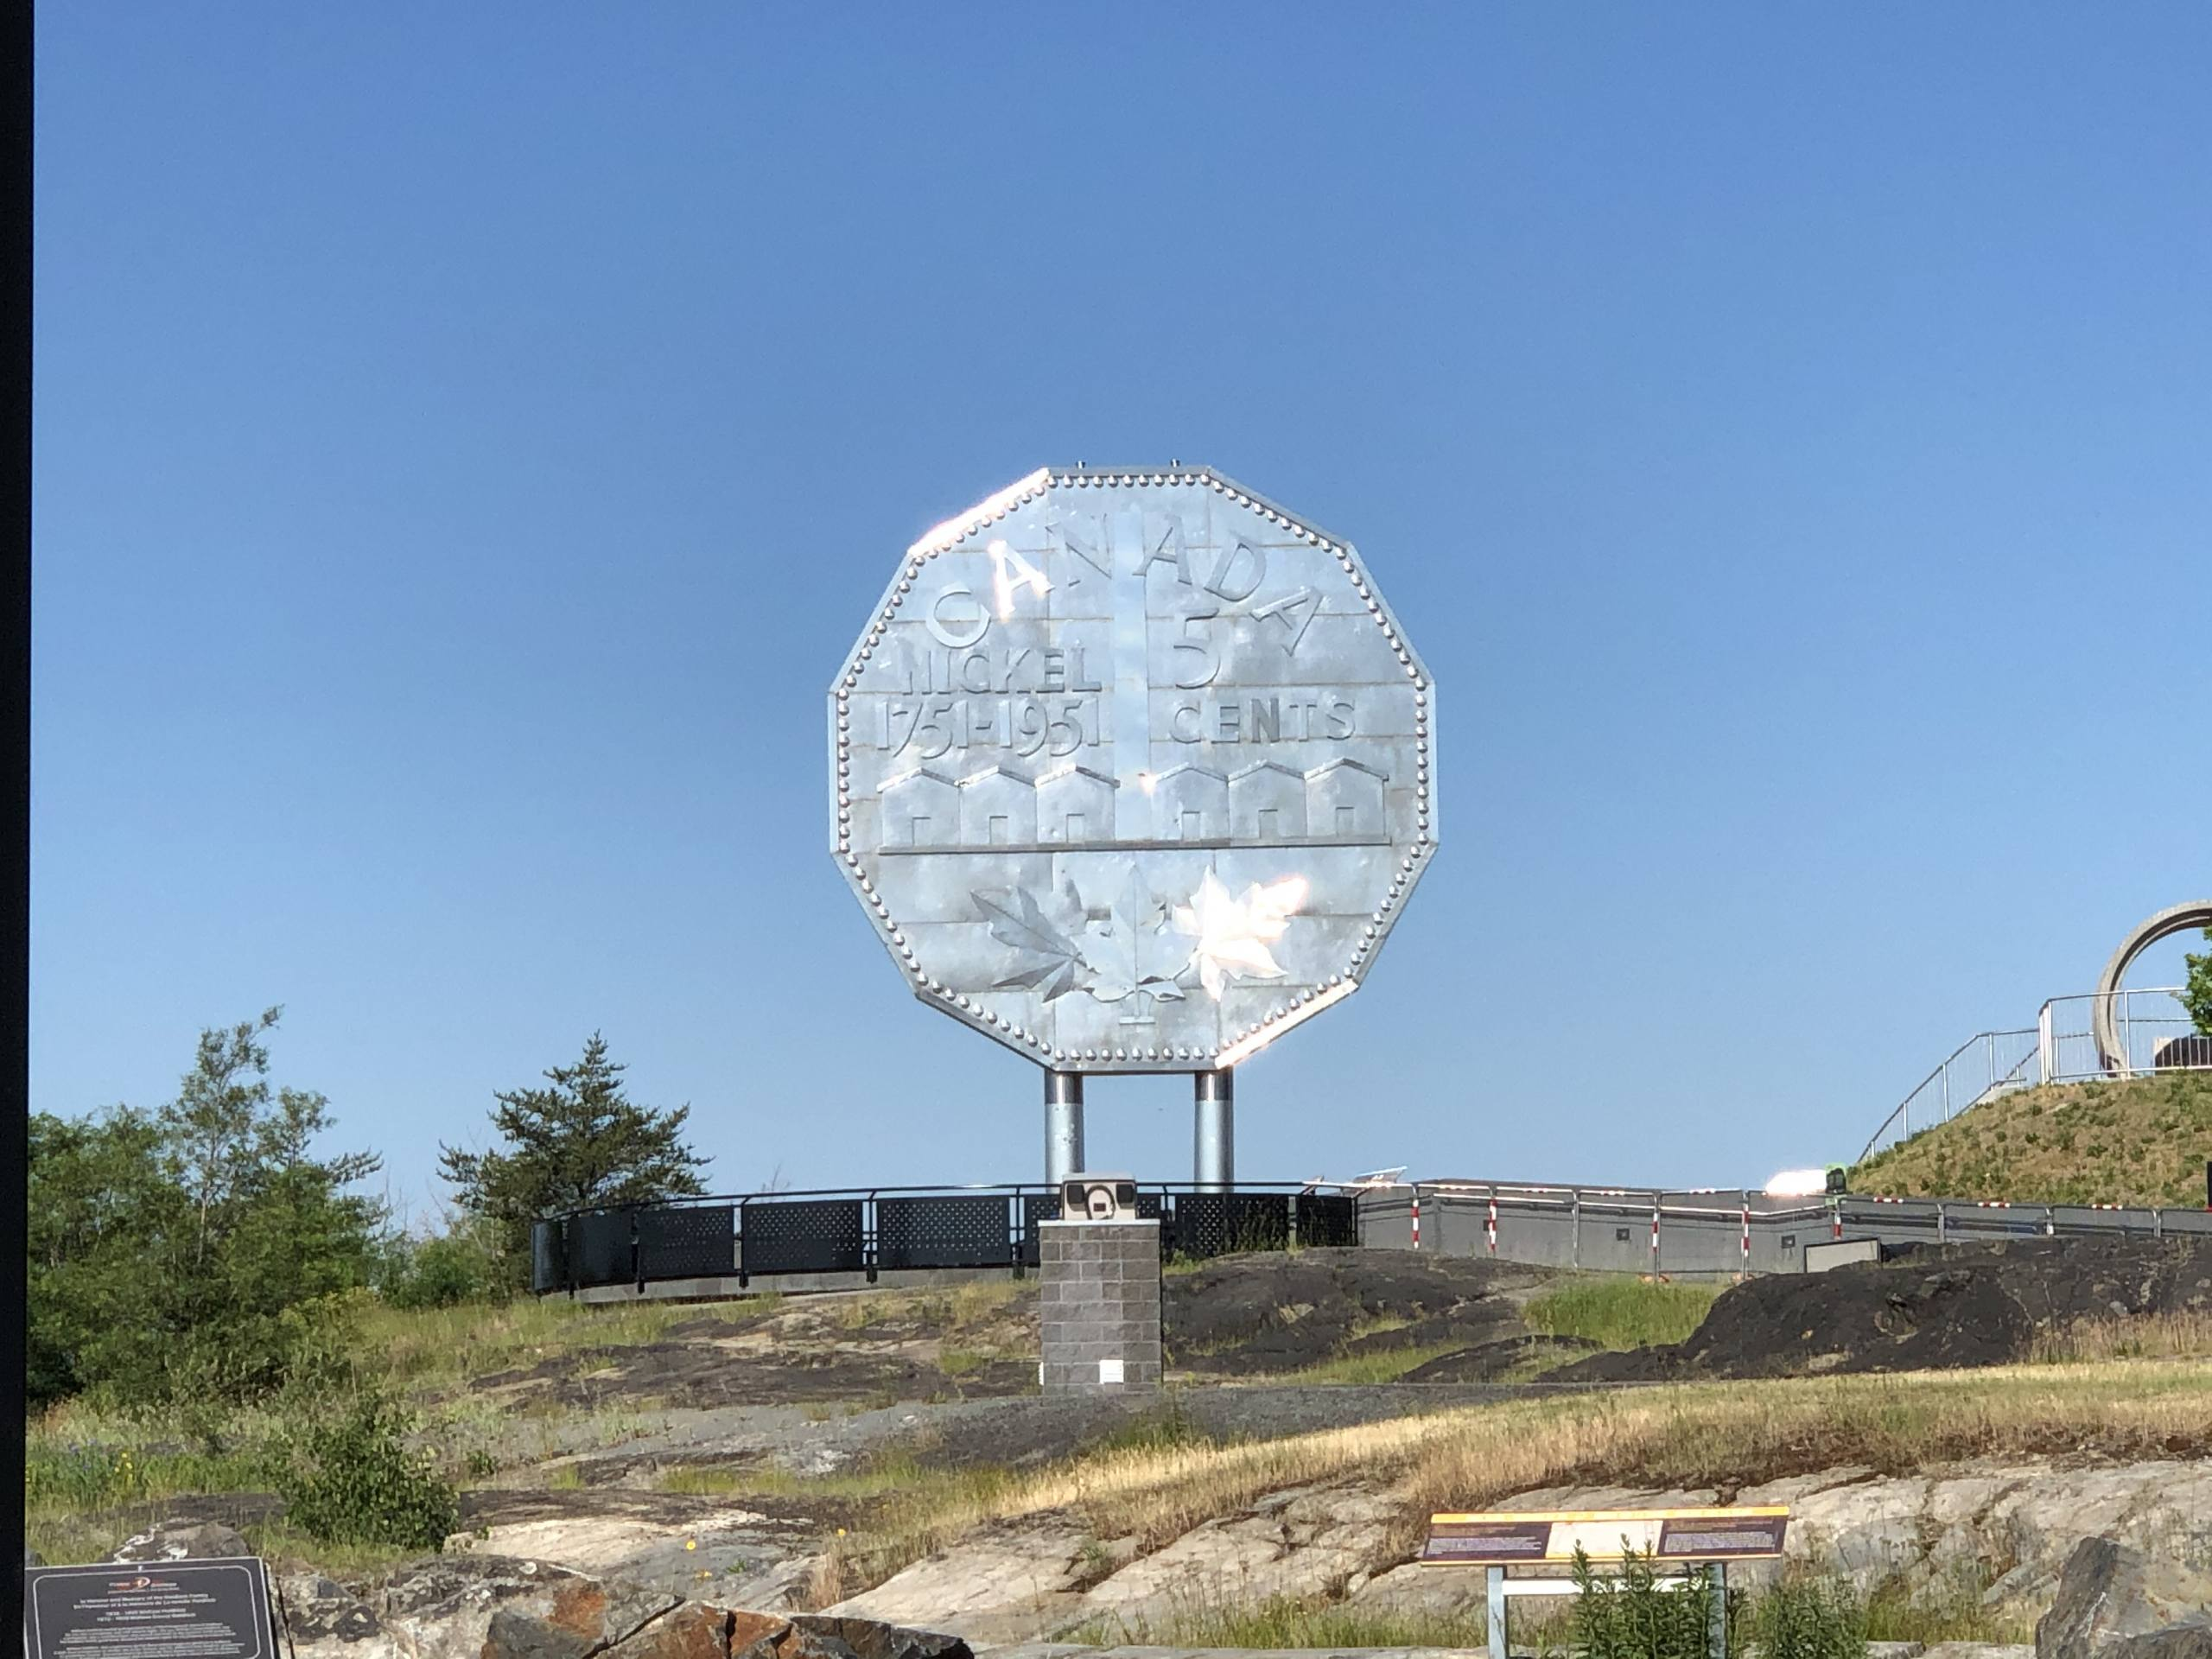 A picture of the famous giant Nickel coin in Sudbury, Ontario